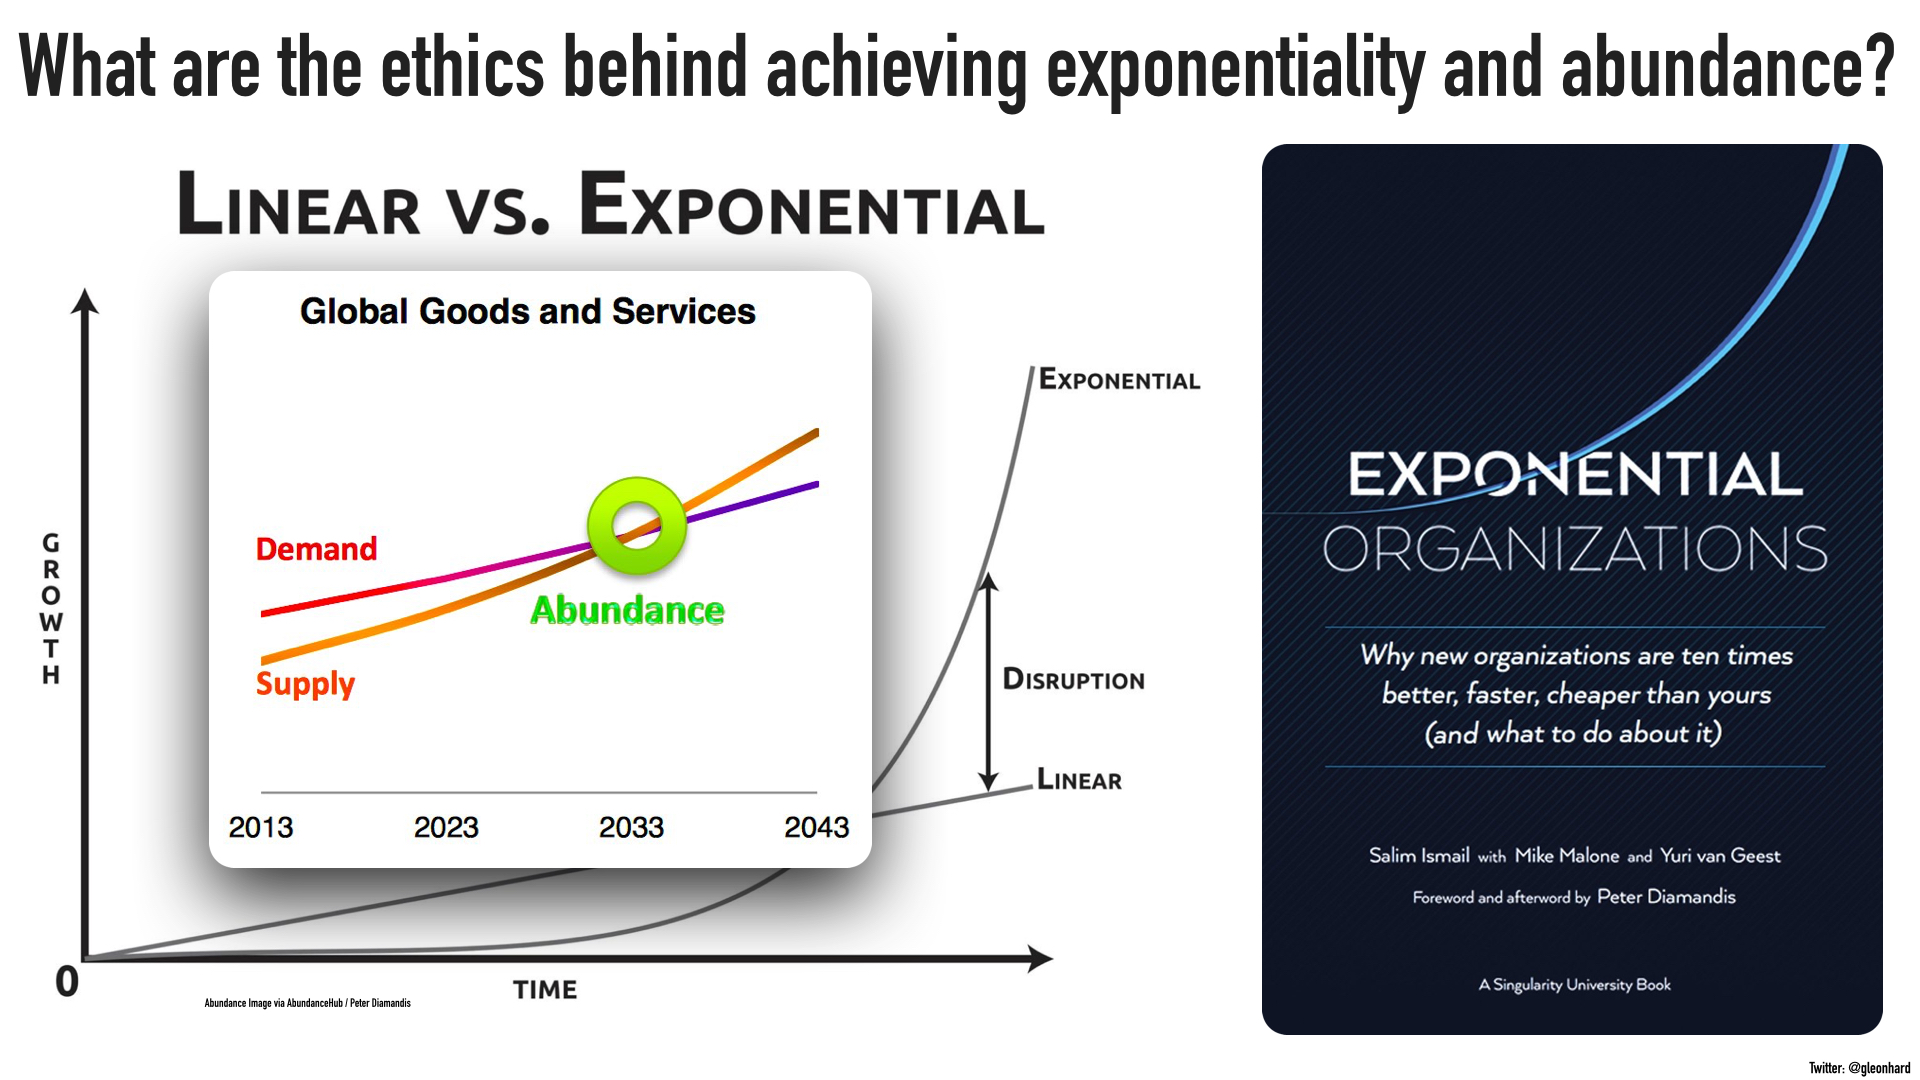 Digital Ethics Gerd Leonhard Futurist Speaker Slideshare.022